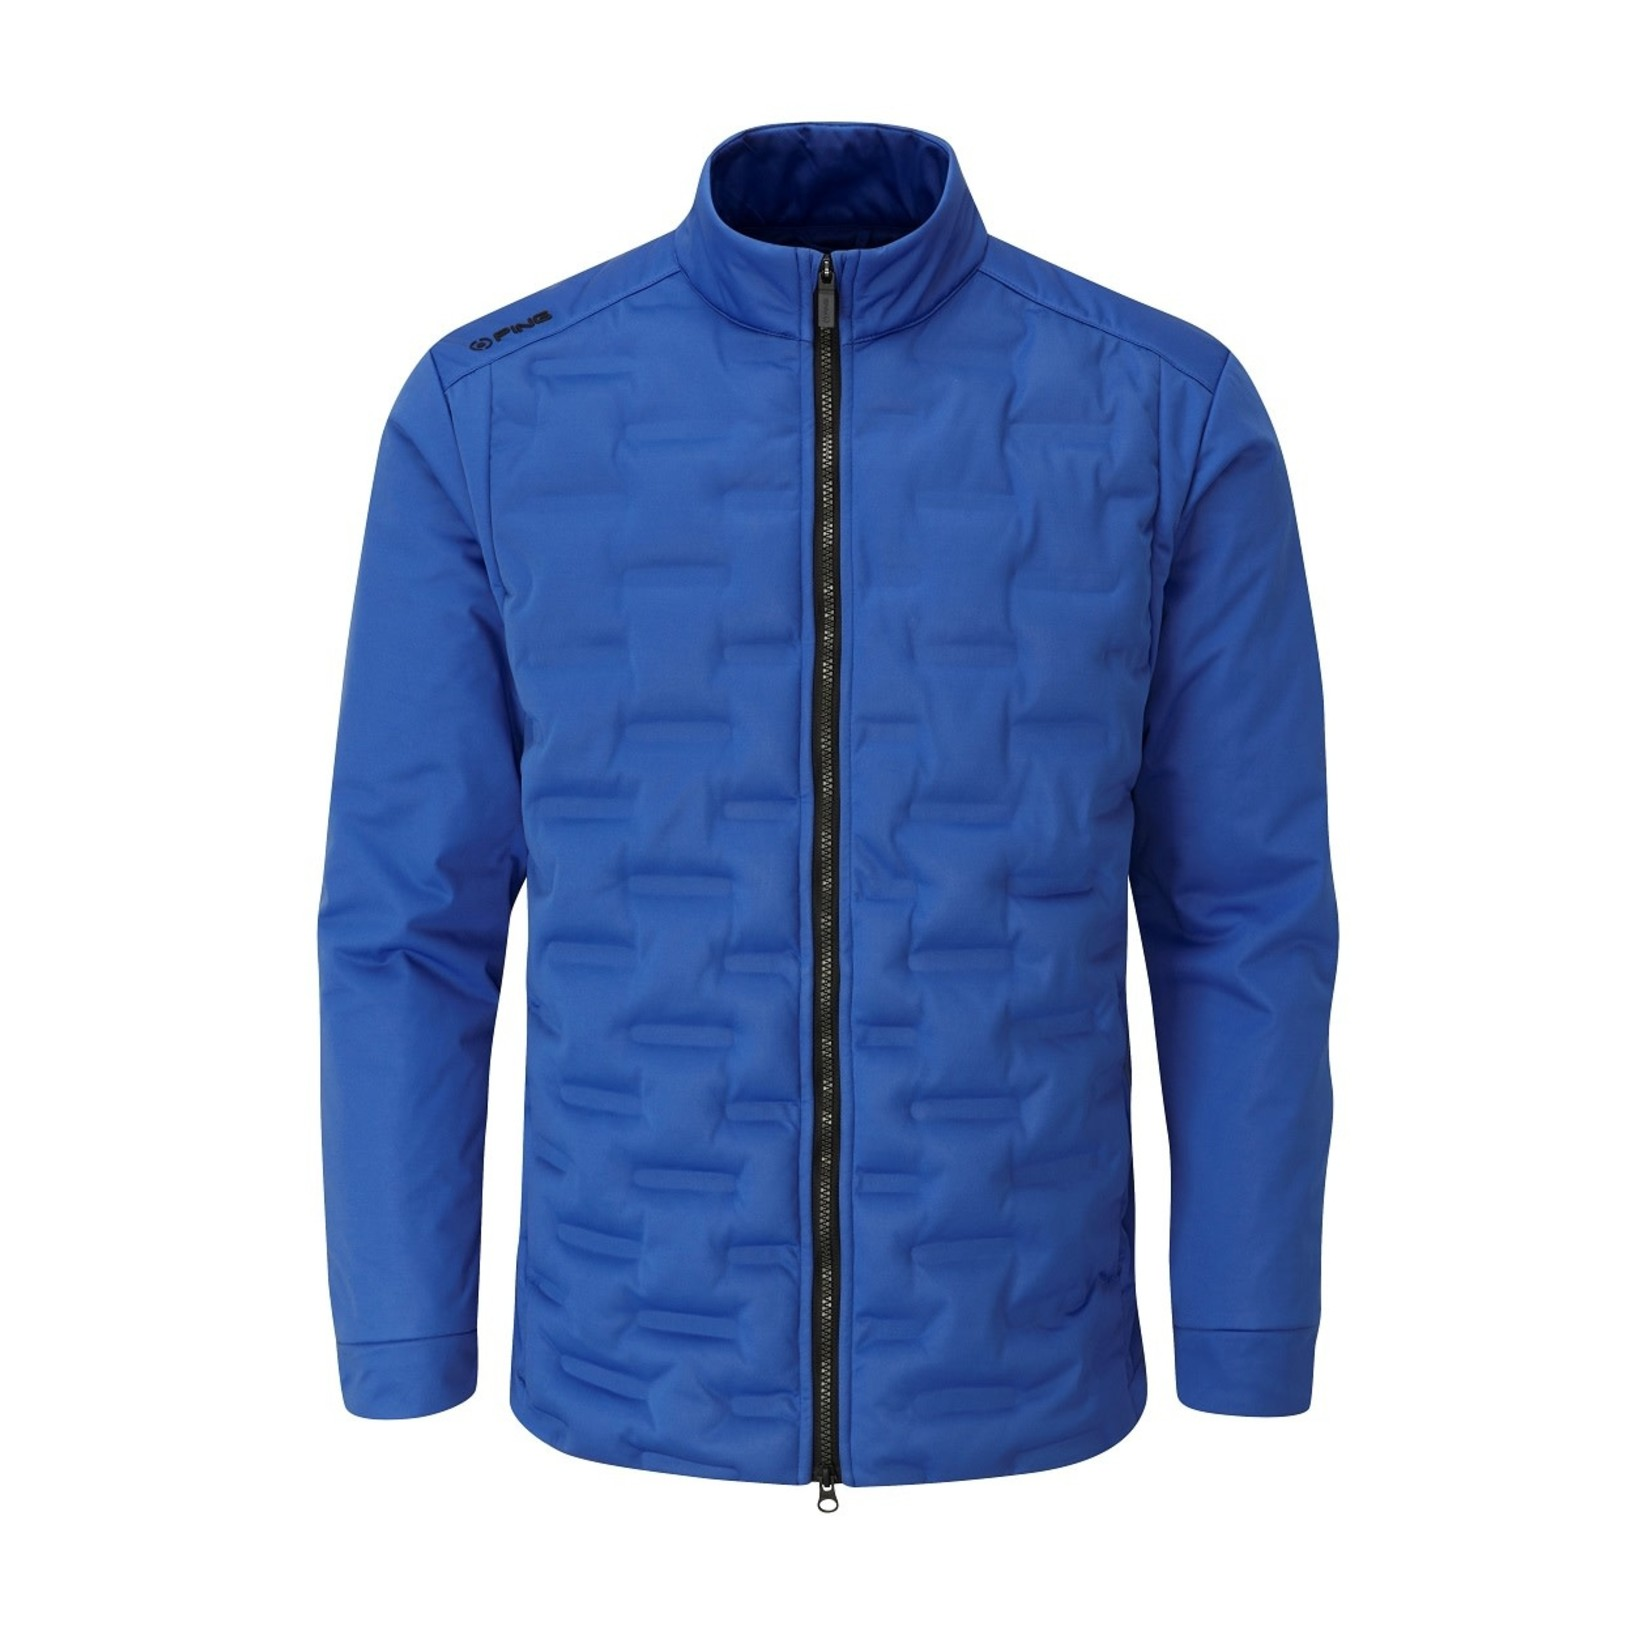 Ping Ping Norse S3 Jacket - Delph Blue